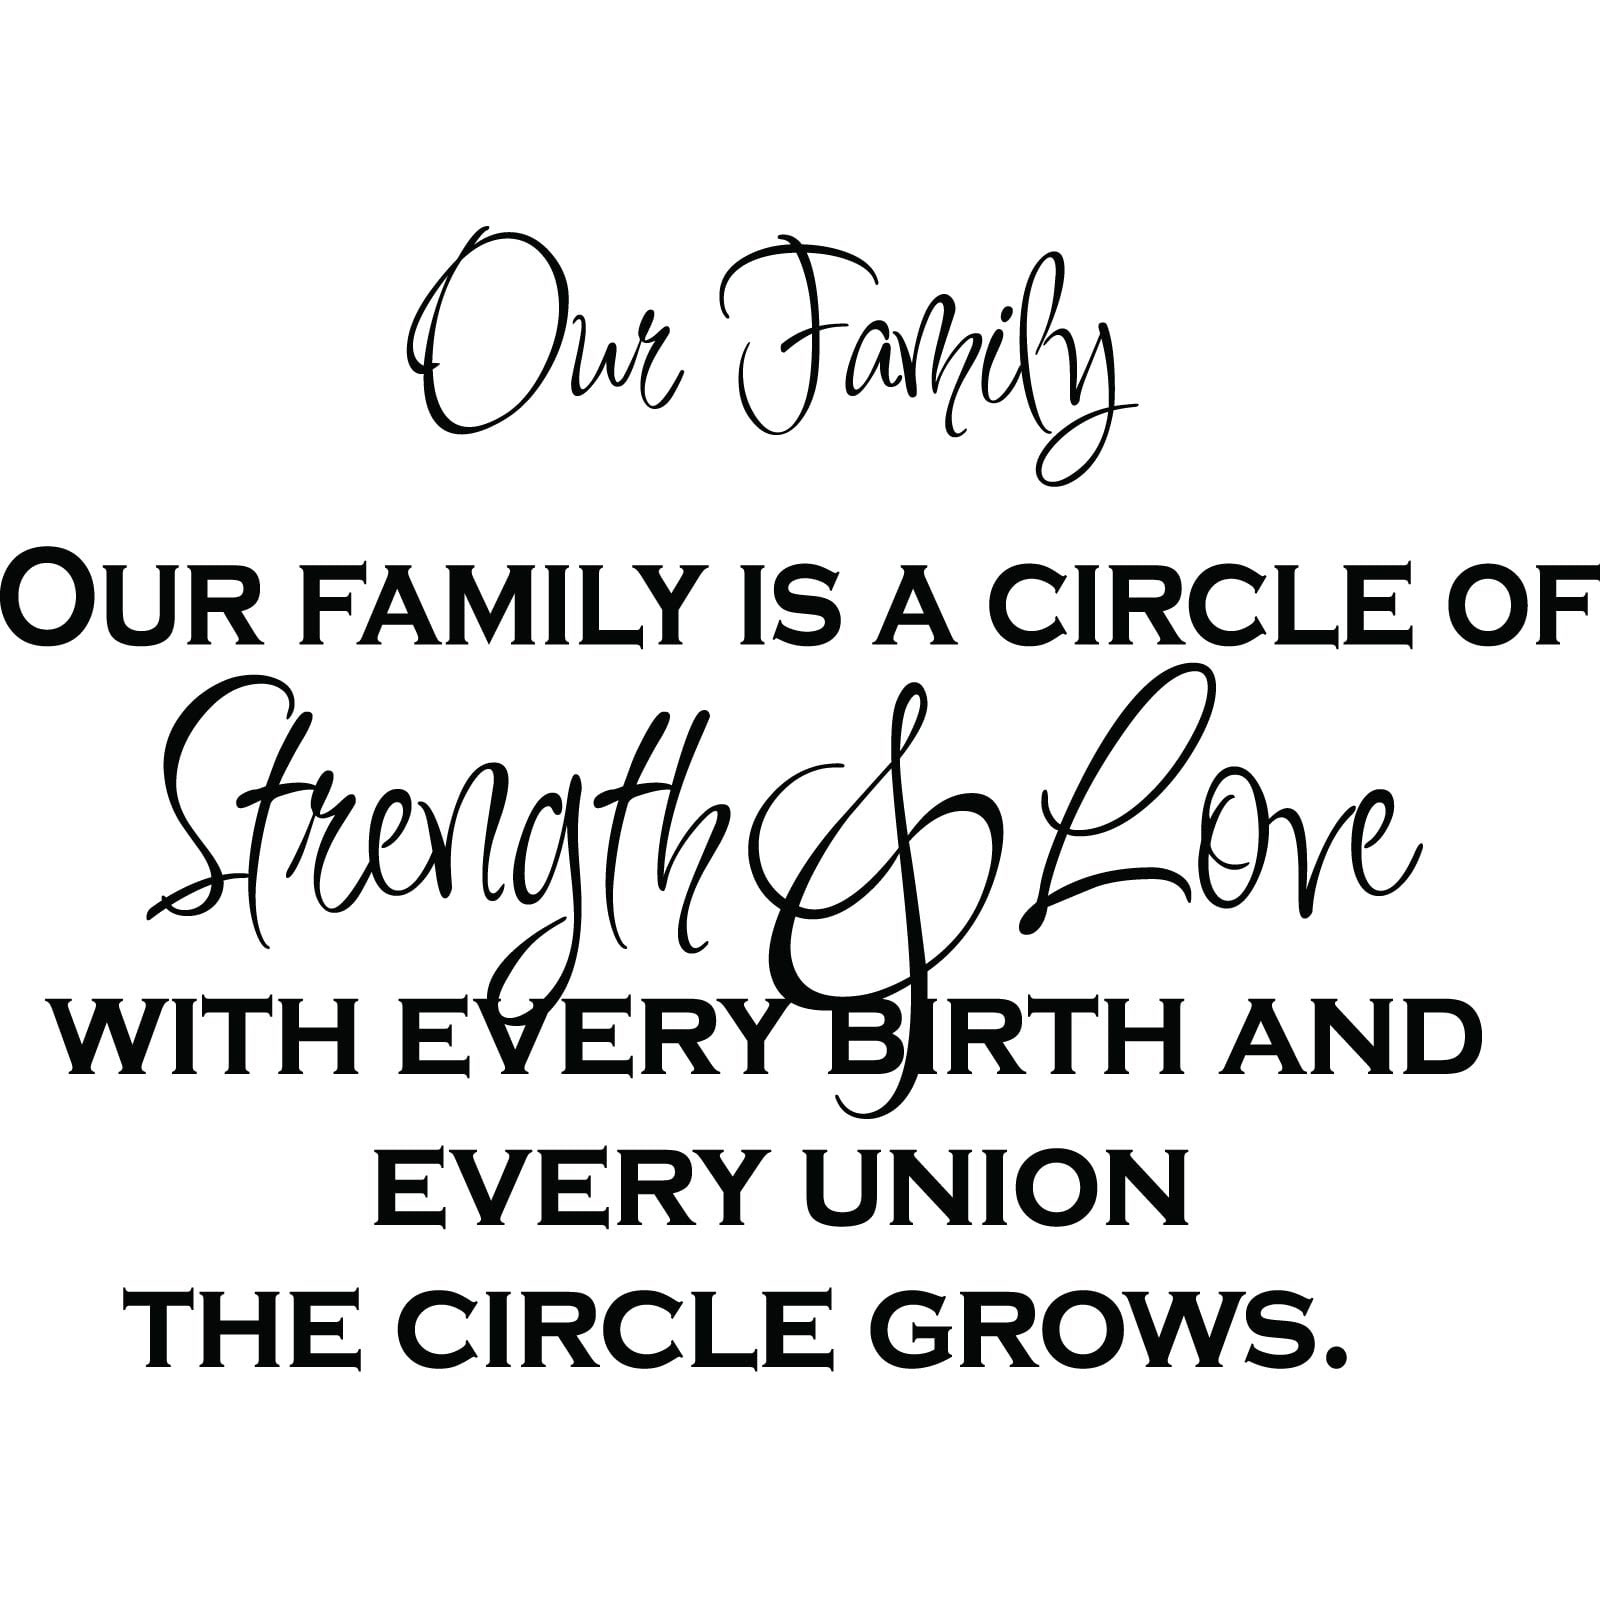 Top Quotes On Family Love and Strength